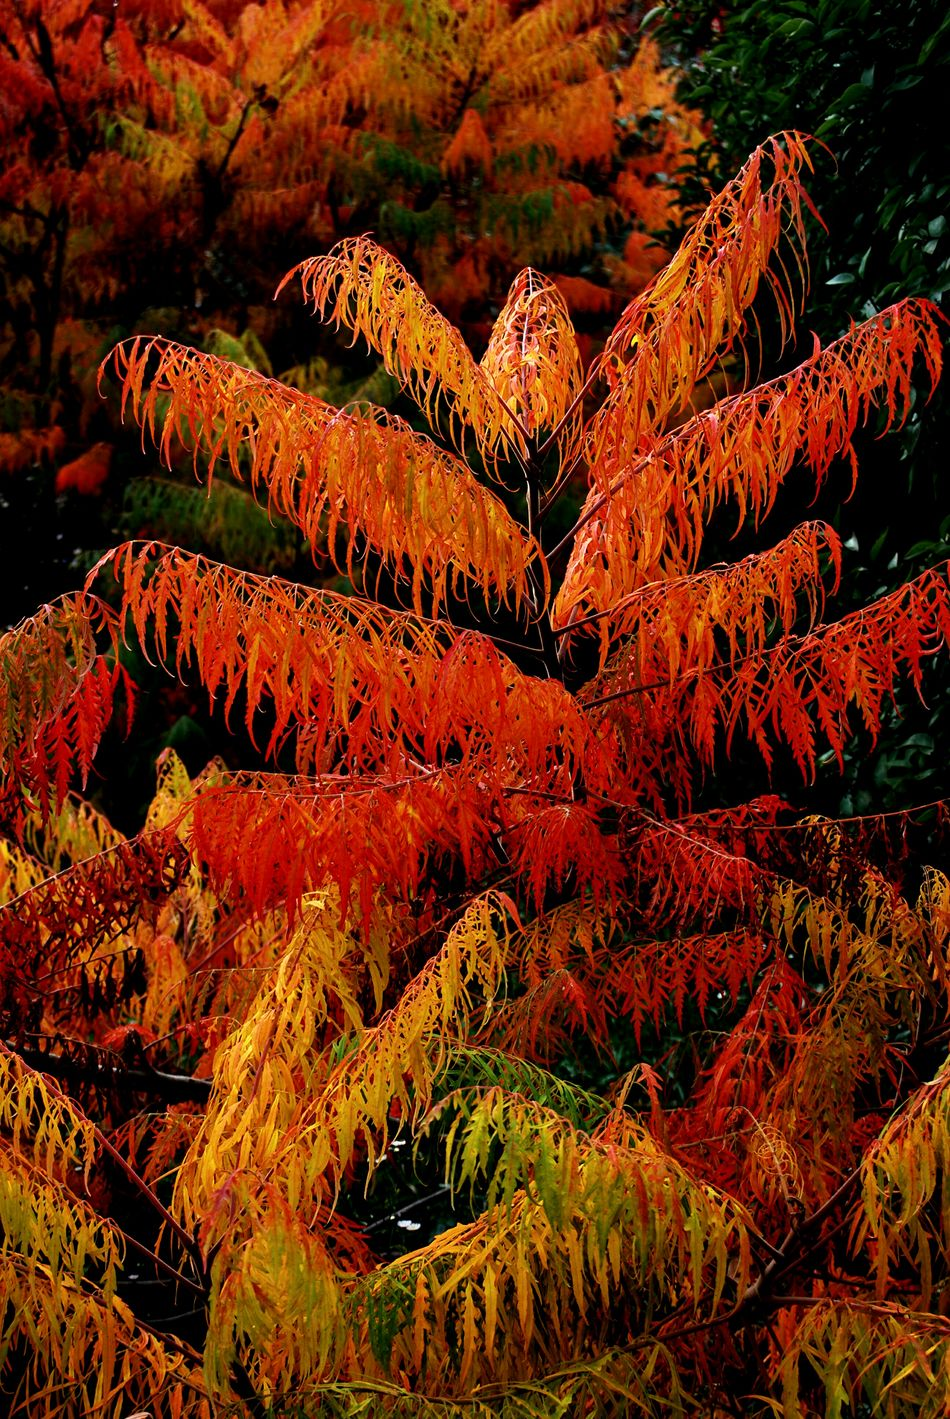 rhus typhina dissecta sumah tree orange autumn fall bright branch Beauty In Nature Growth Plant No People Outdoors Landscape Day Nature Orange Color Leaves🌿 Maple Leaf Cityparking Multi Colored Photographer Orange Color Photos Branches And Leaves Tourism Orange Tree Garden Photography Golden Leaves Autumnbeauty Autumn🍁🍁🍁 Autumn Is Here...Fall Mood!